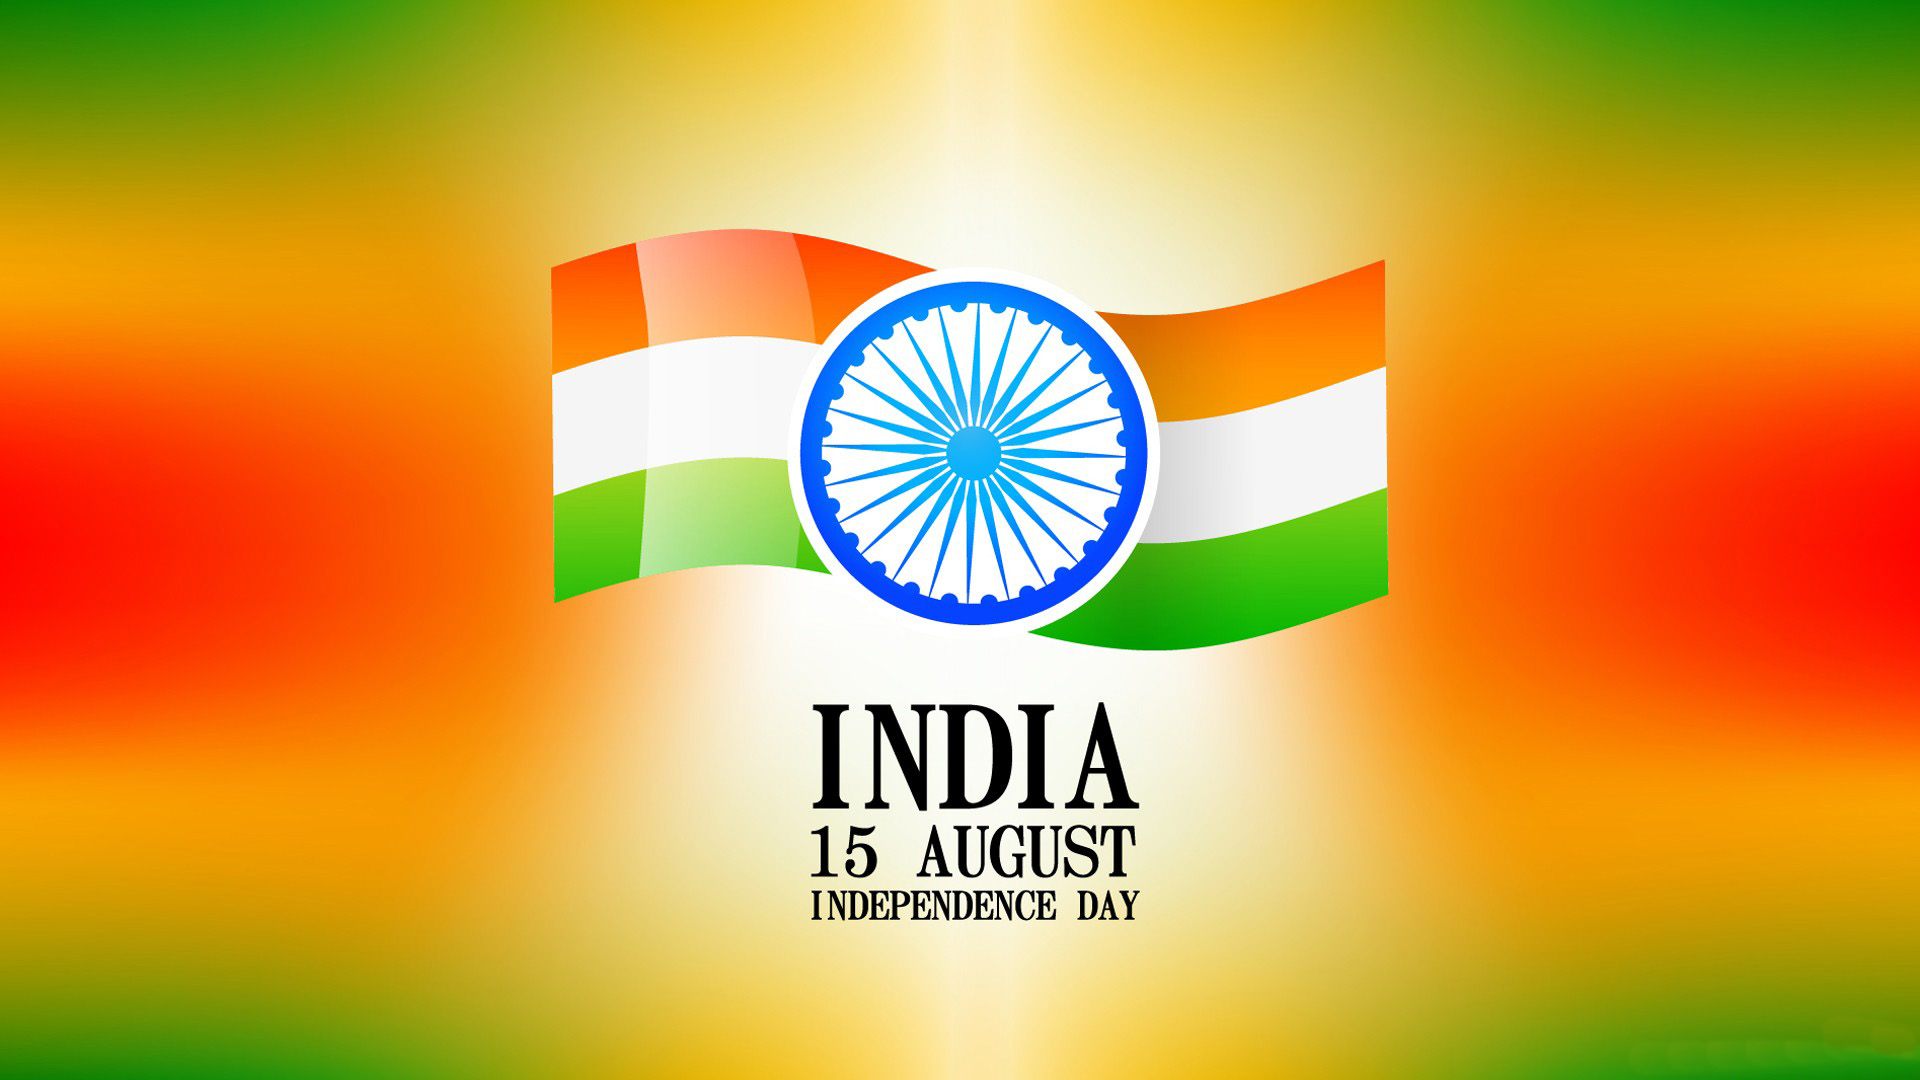 Indian Flag HD Wallpaper 15 August Independence Day